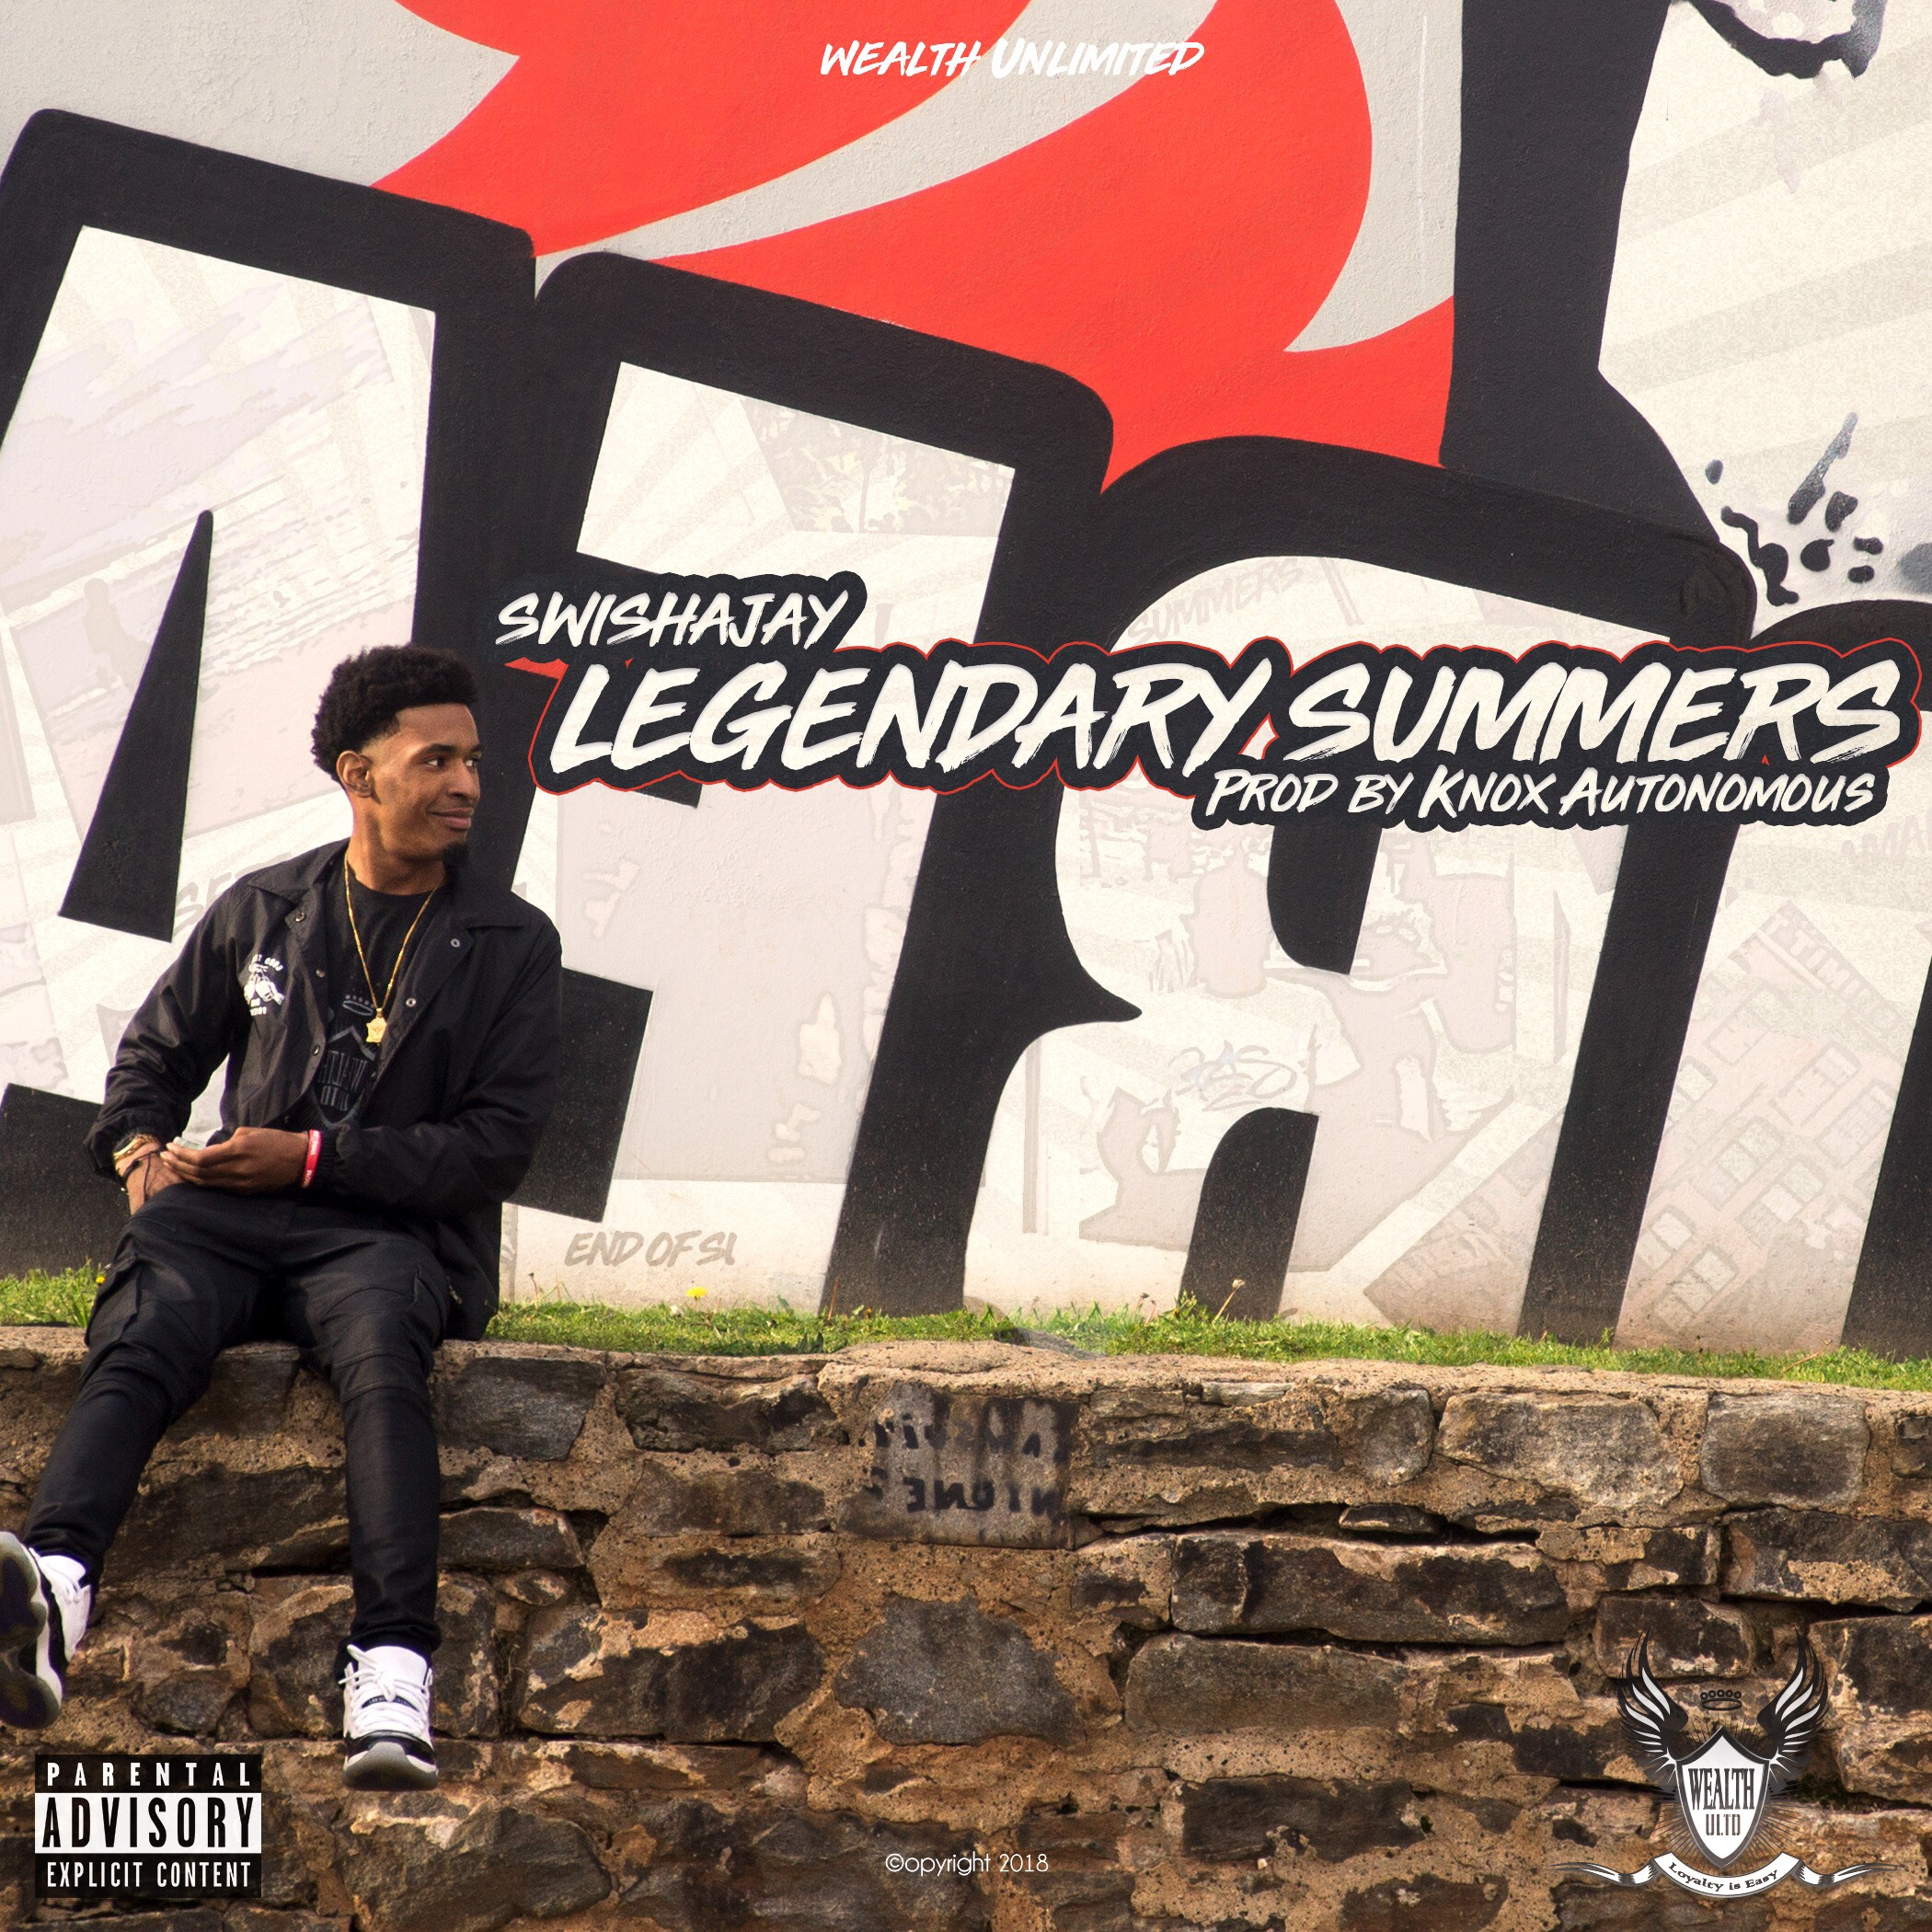 Legendary Summers - OUT NOW!